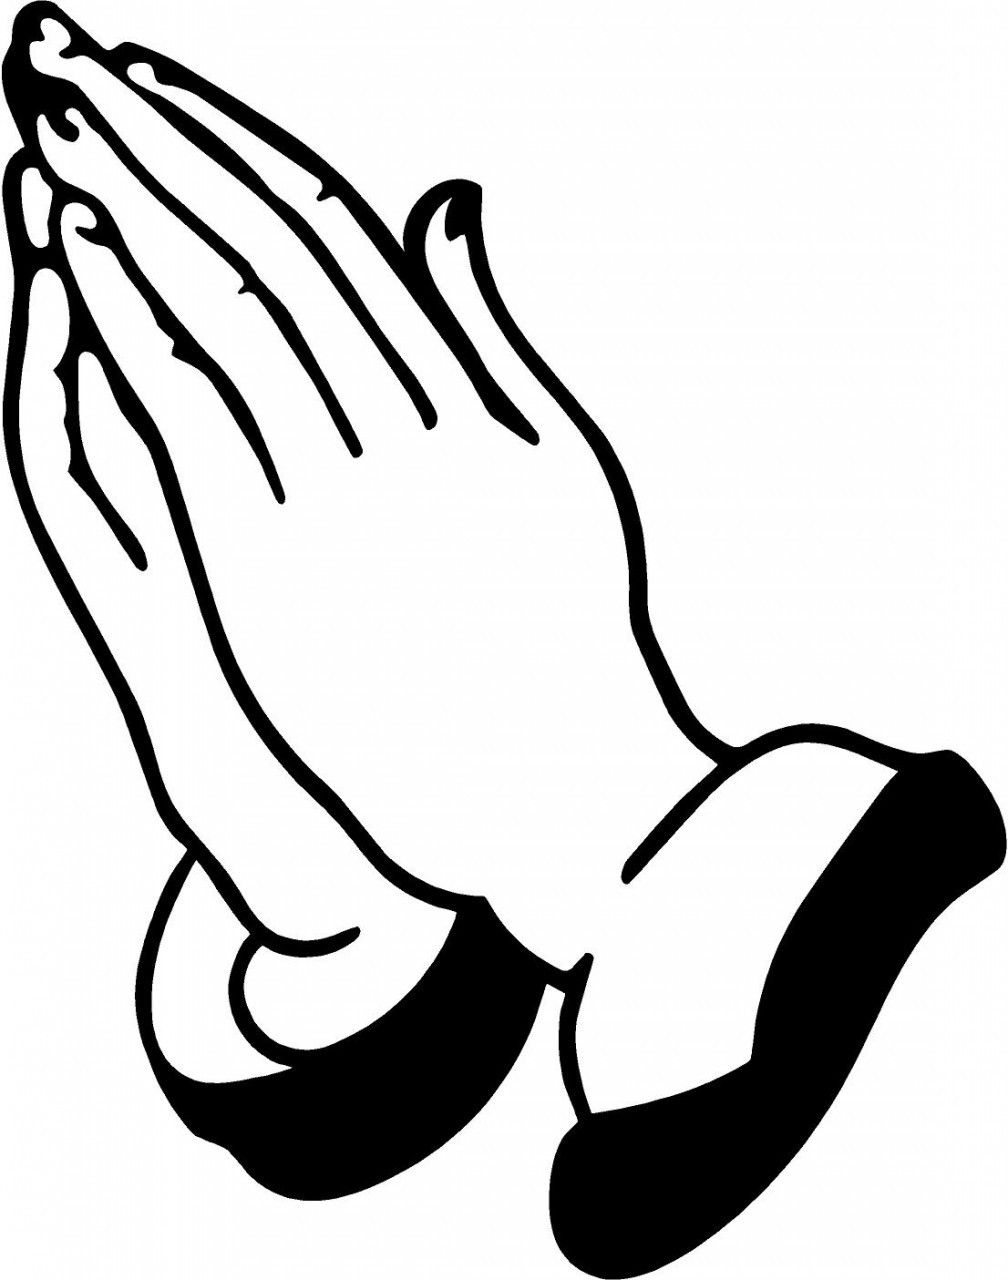 Jesus praying hands clipart clipart freeuse praying hands - Google Search | Sunday School bulletin board ideas ... clipart freeuse